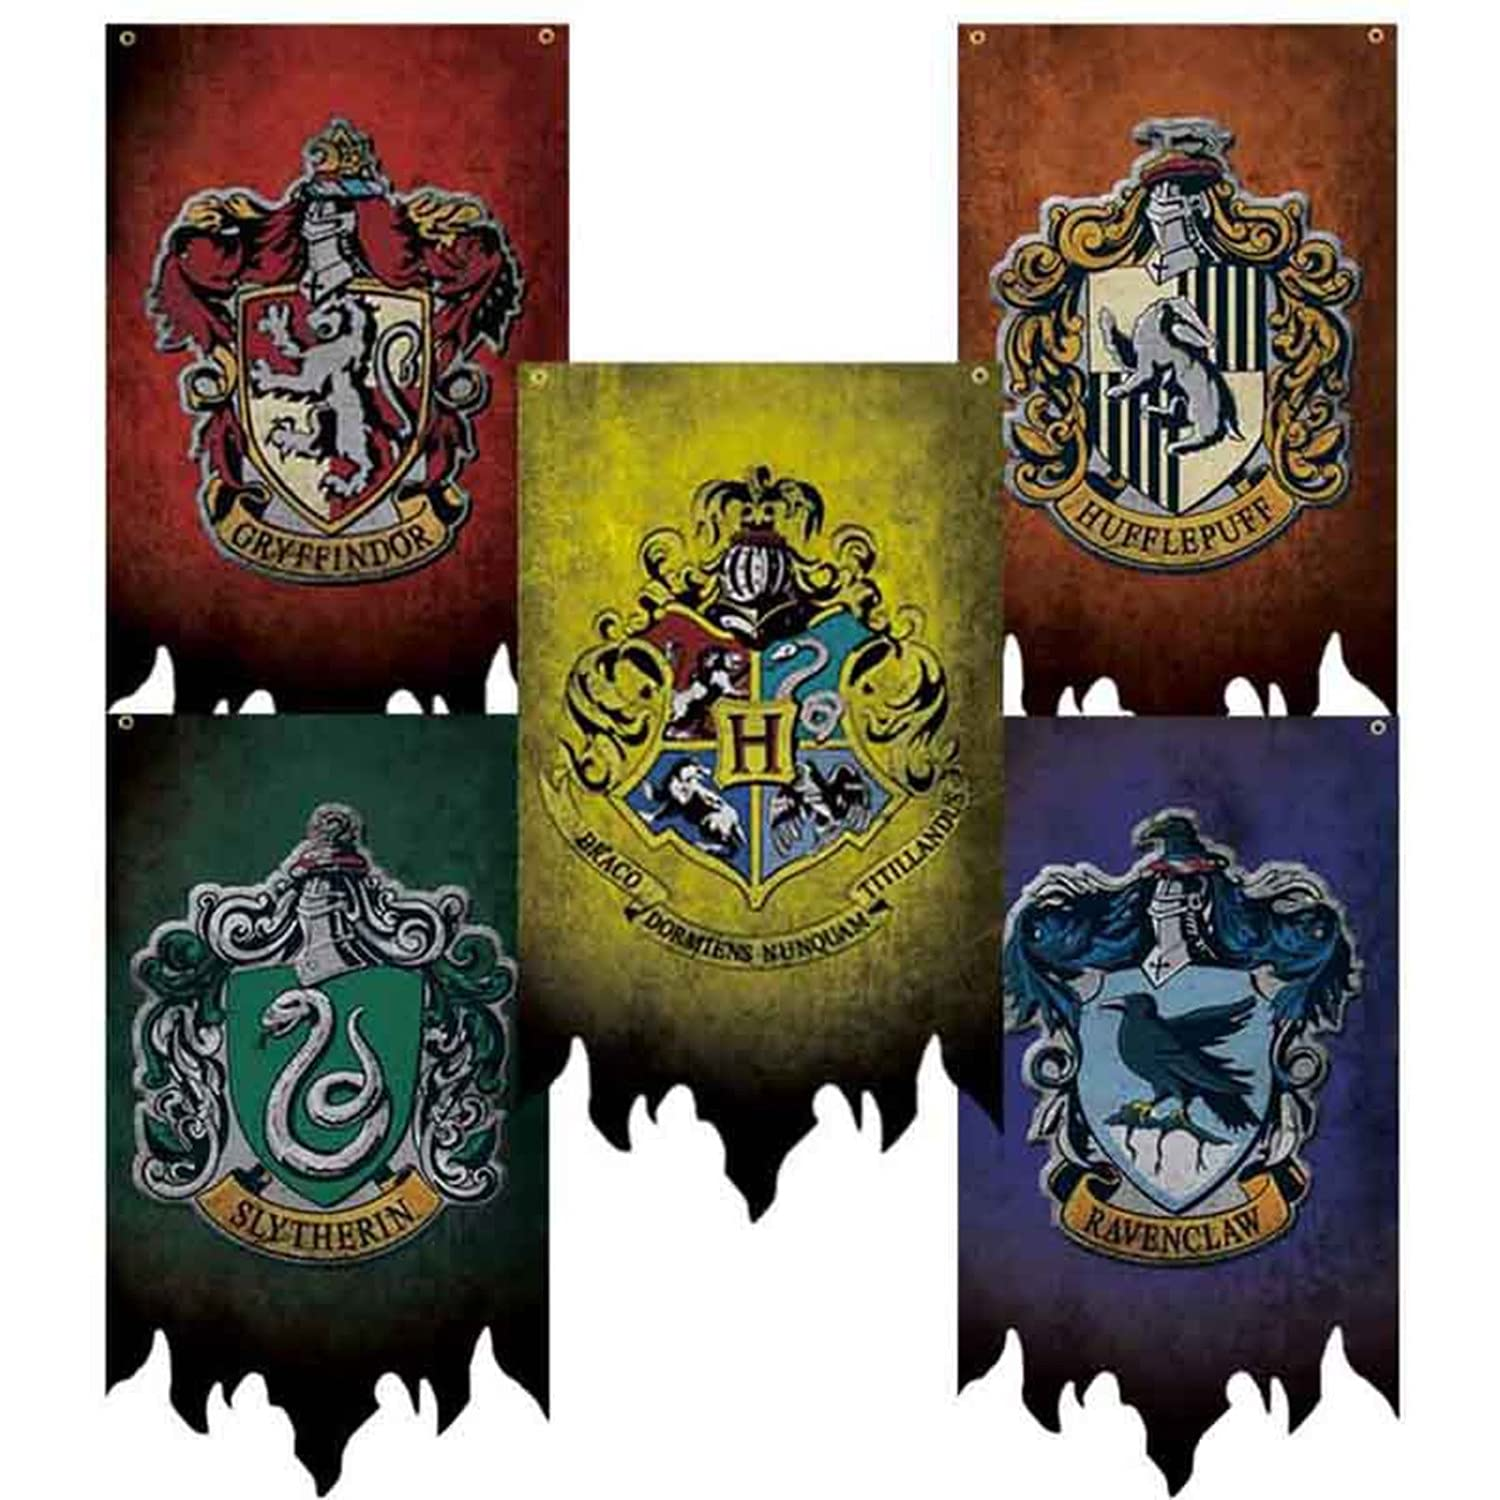 Harry Potter Hogwarts Gryffindor Slytherin Hufflepuff Ravenclaw Collection House Banner Wall Decoration Indoor Outdoor Party Holiday Decoration Flag (5pcs, 12x20inch)